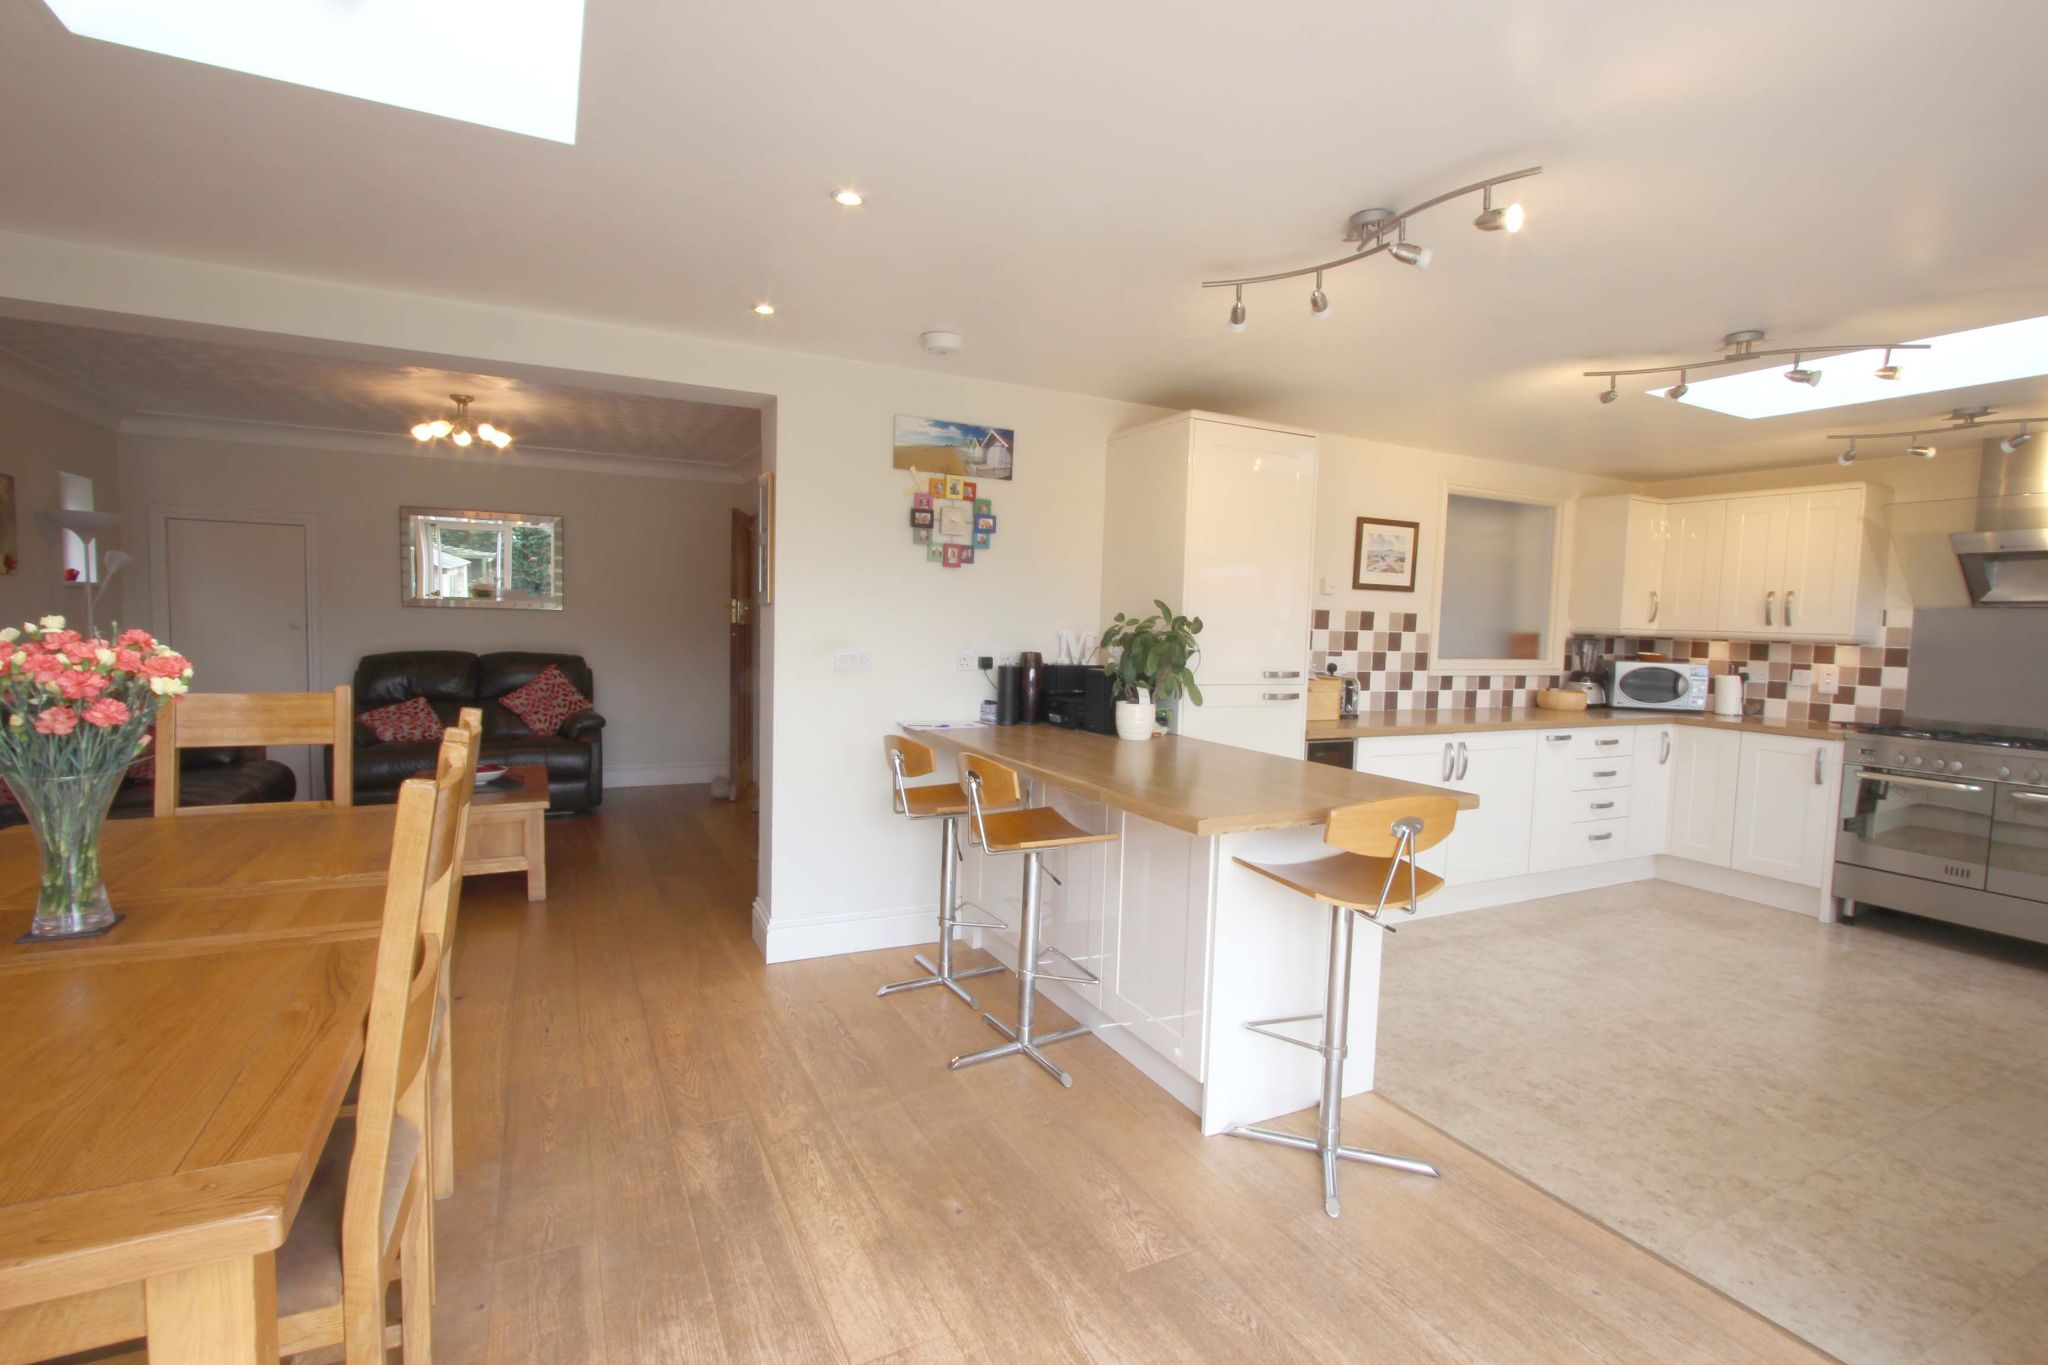 4 bedroom chalet house SSTC in Potters Bar - Photograph 3